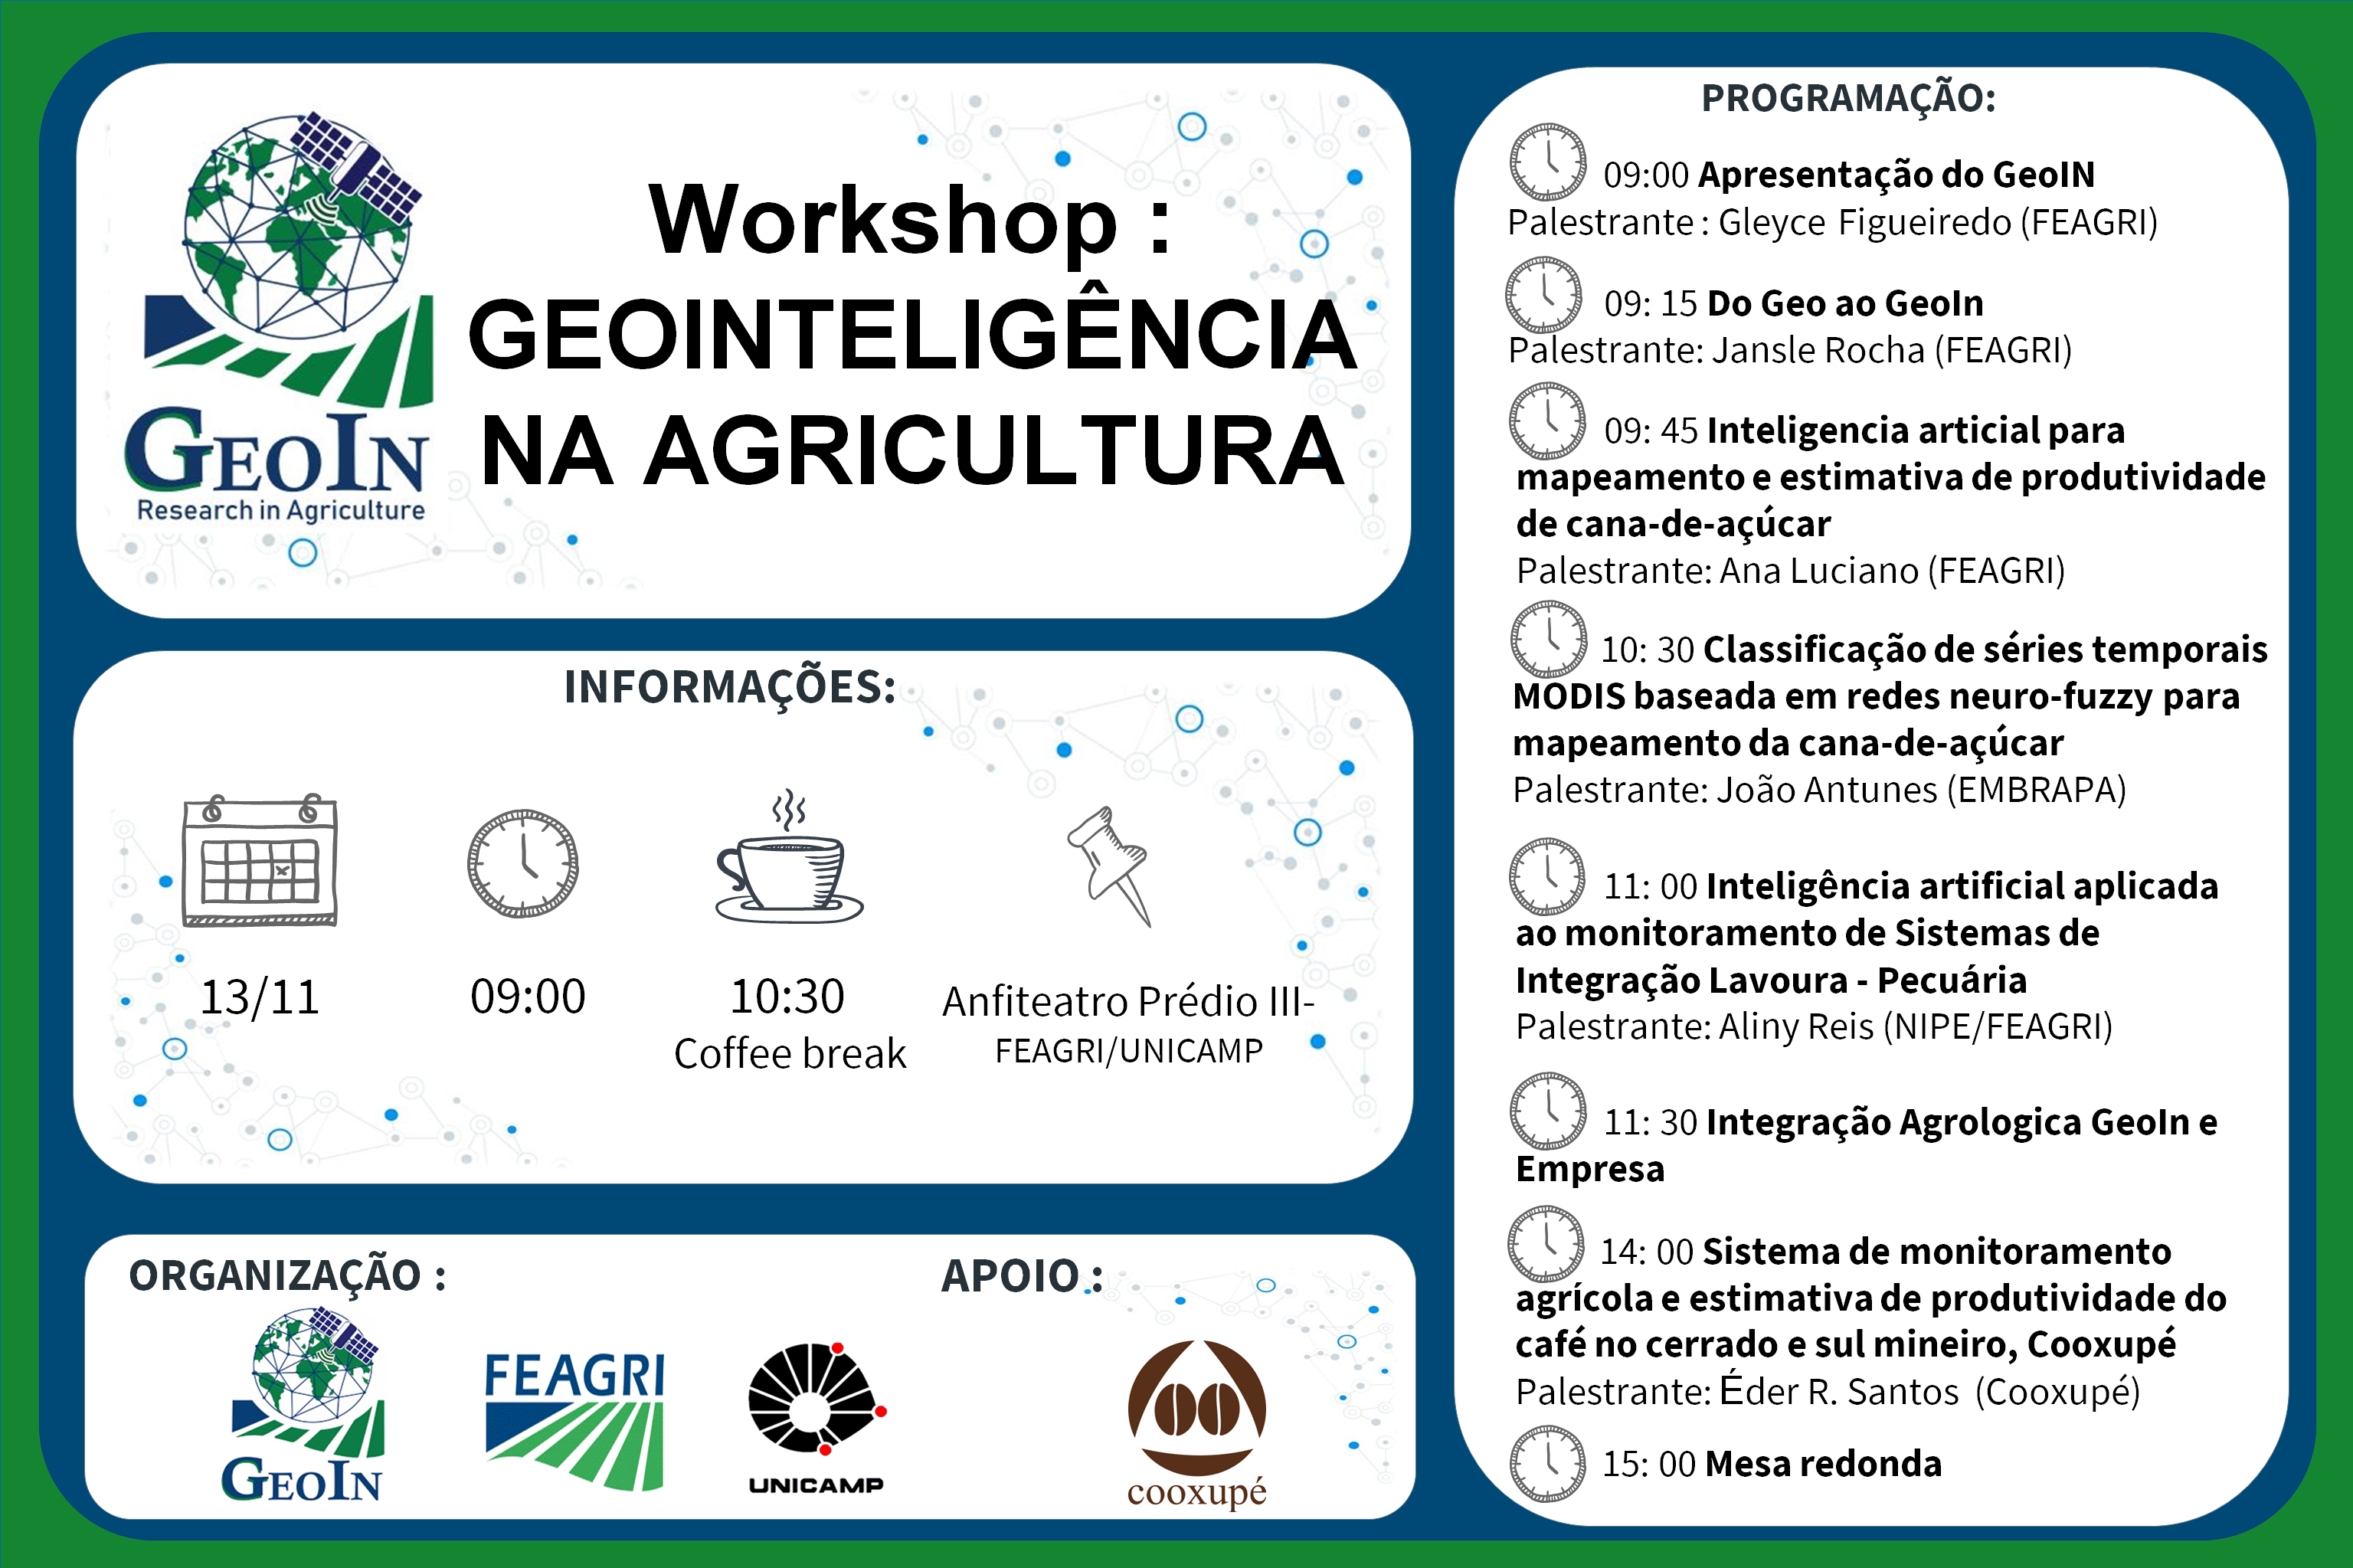 workshop geointeligencia na agricultura